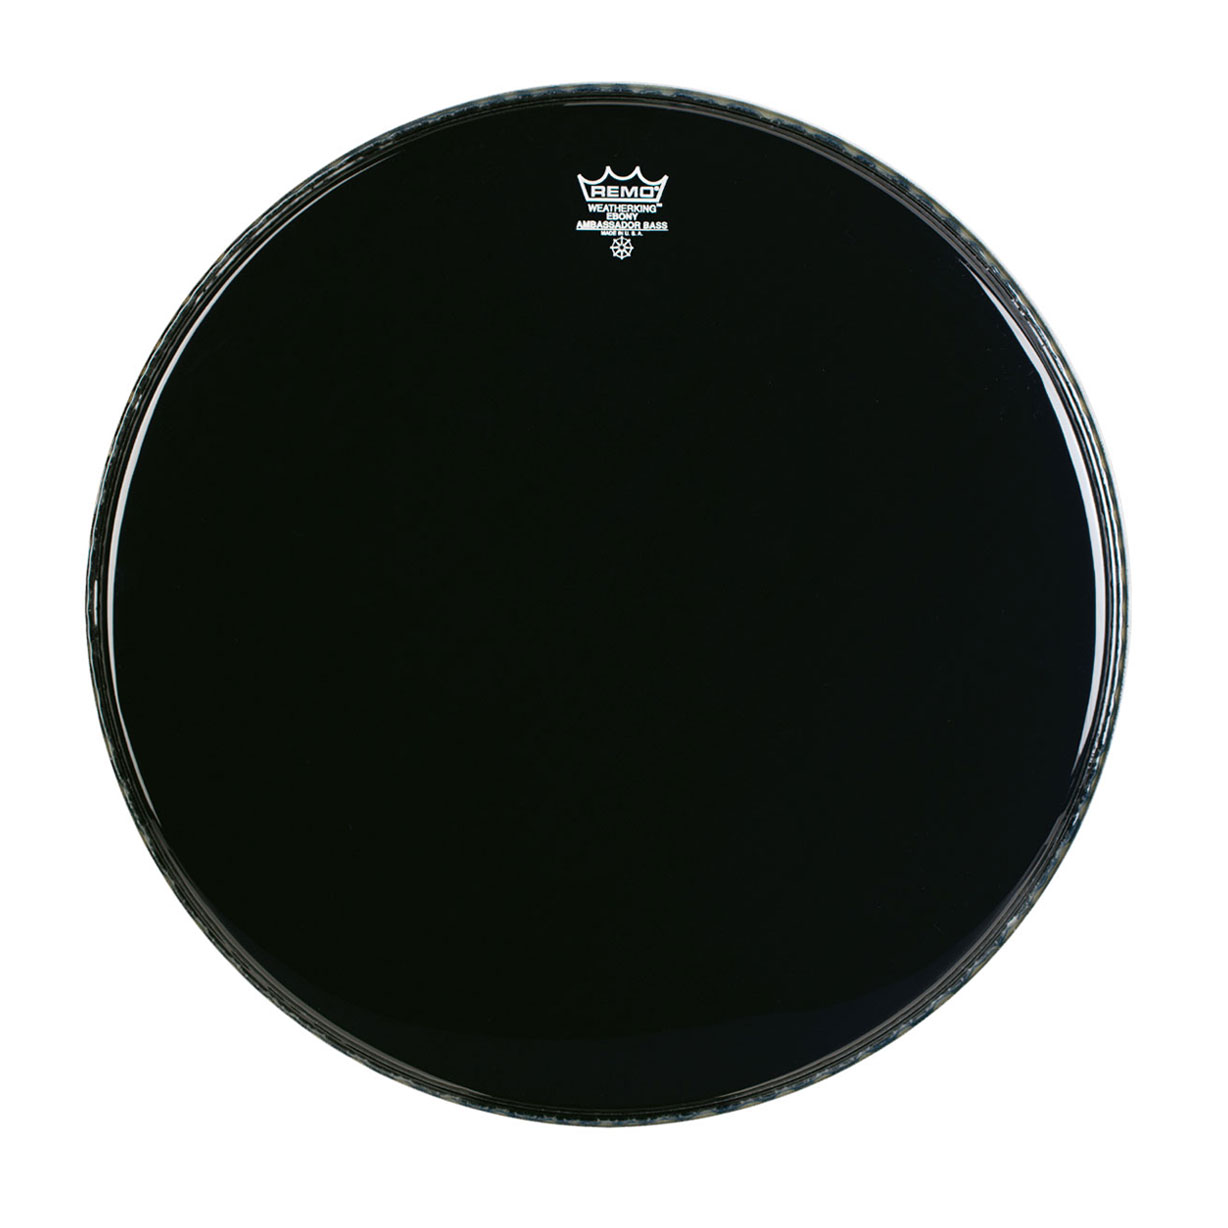 "Remo 26"" Ambassador Ebony Crimplock Marching Bass Drum Head"